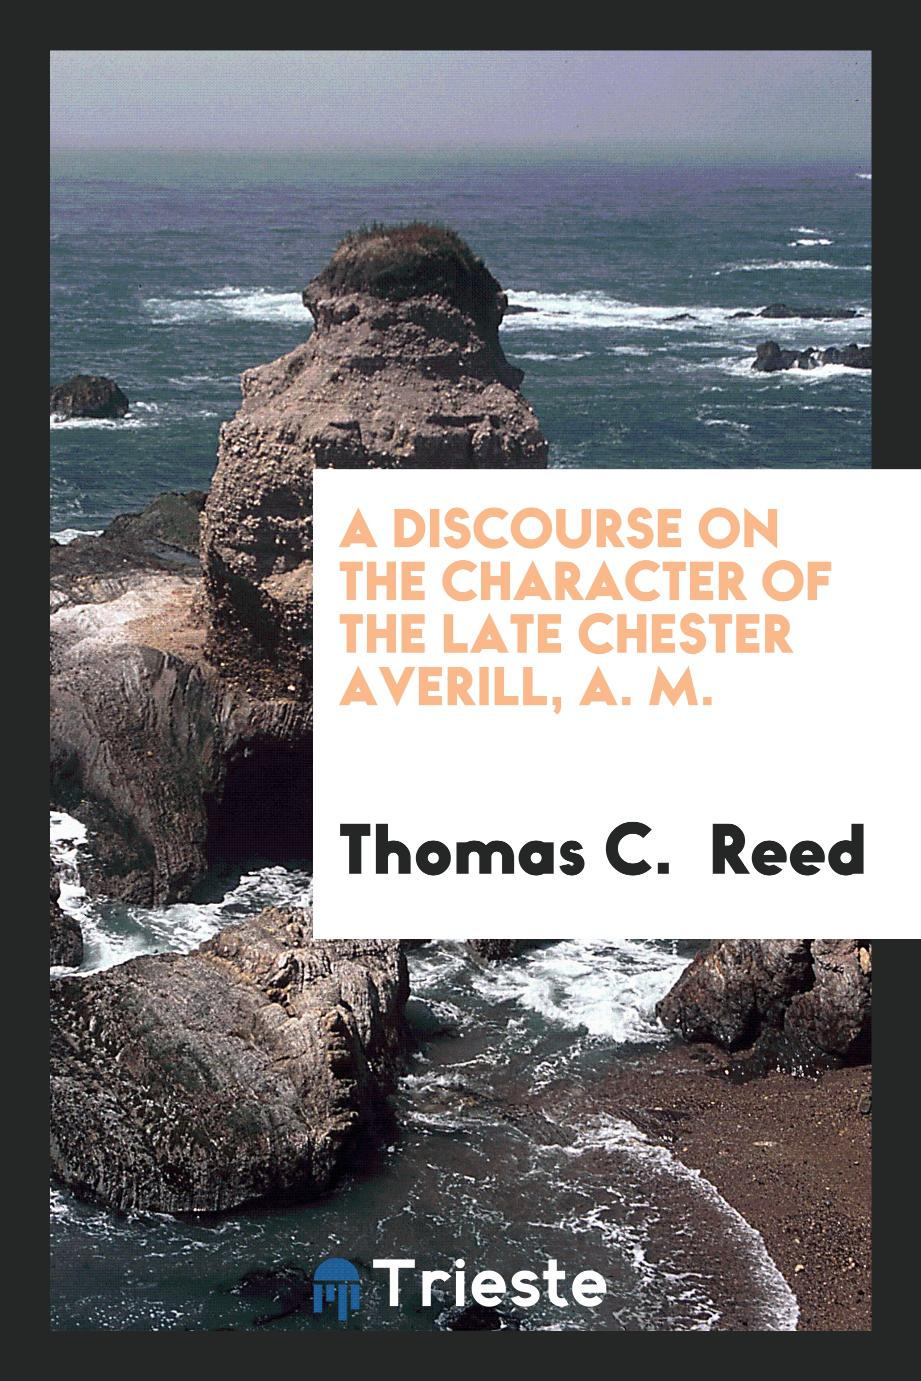 A Discourse on the Character of the Late Chester Averill, A. M.